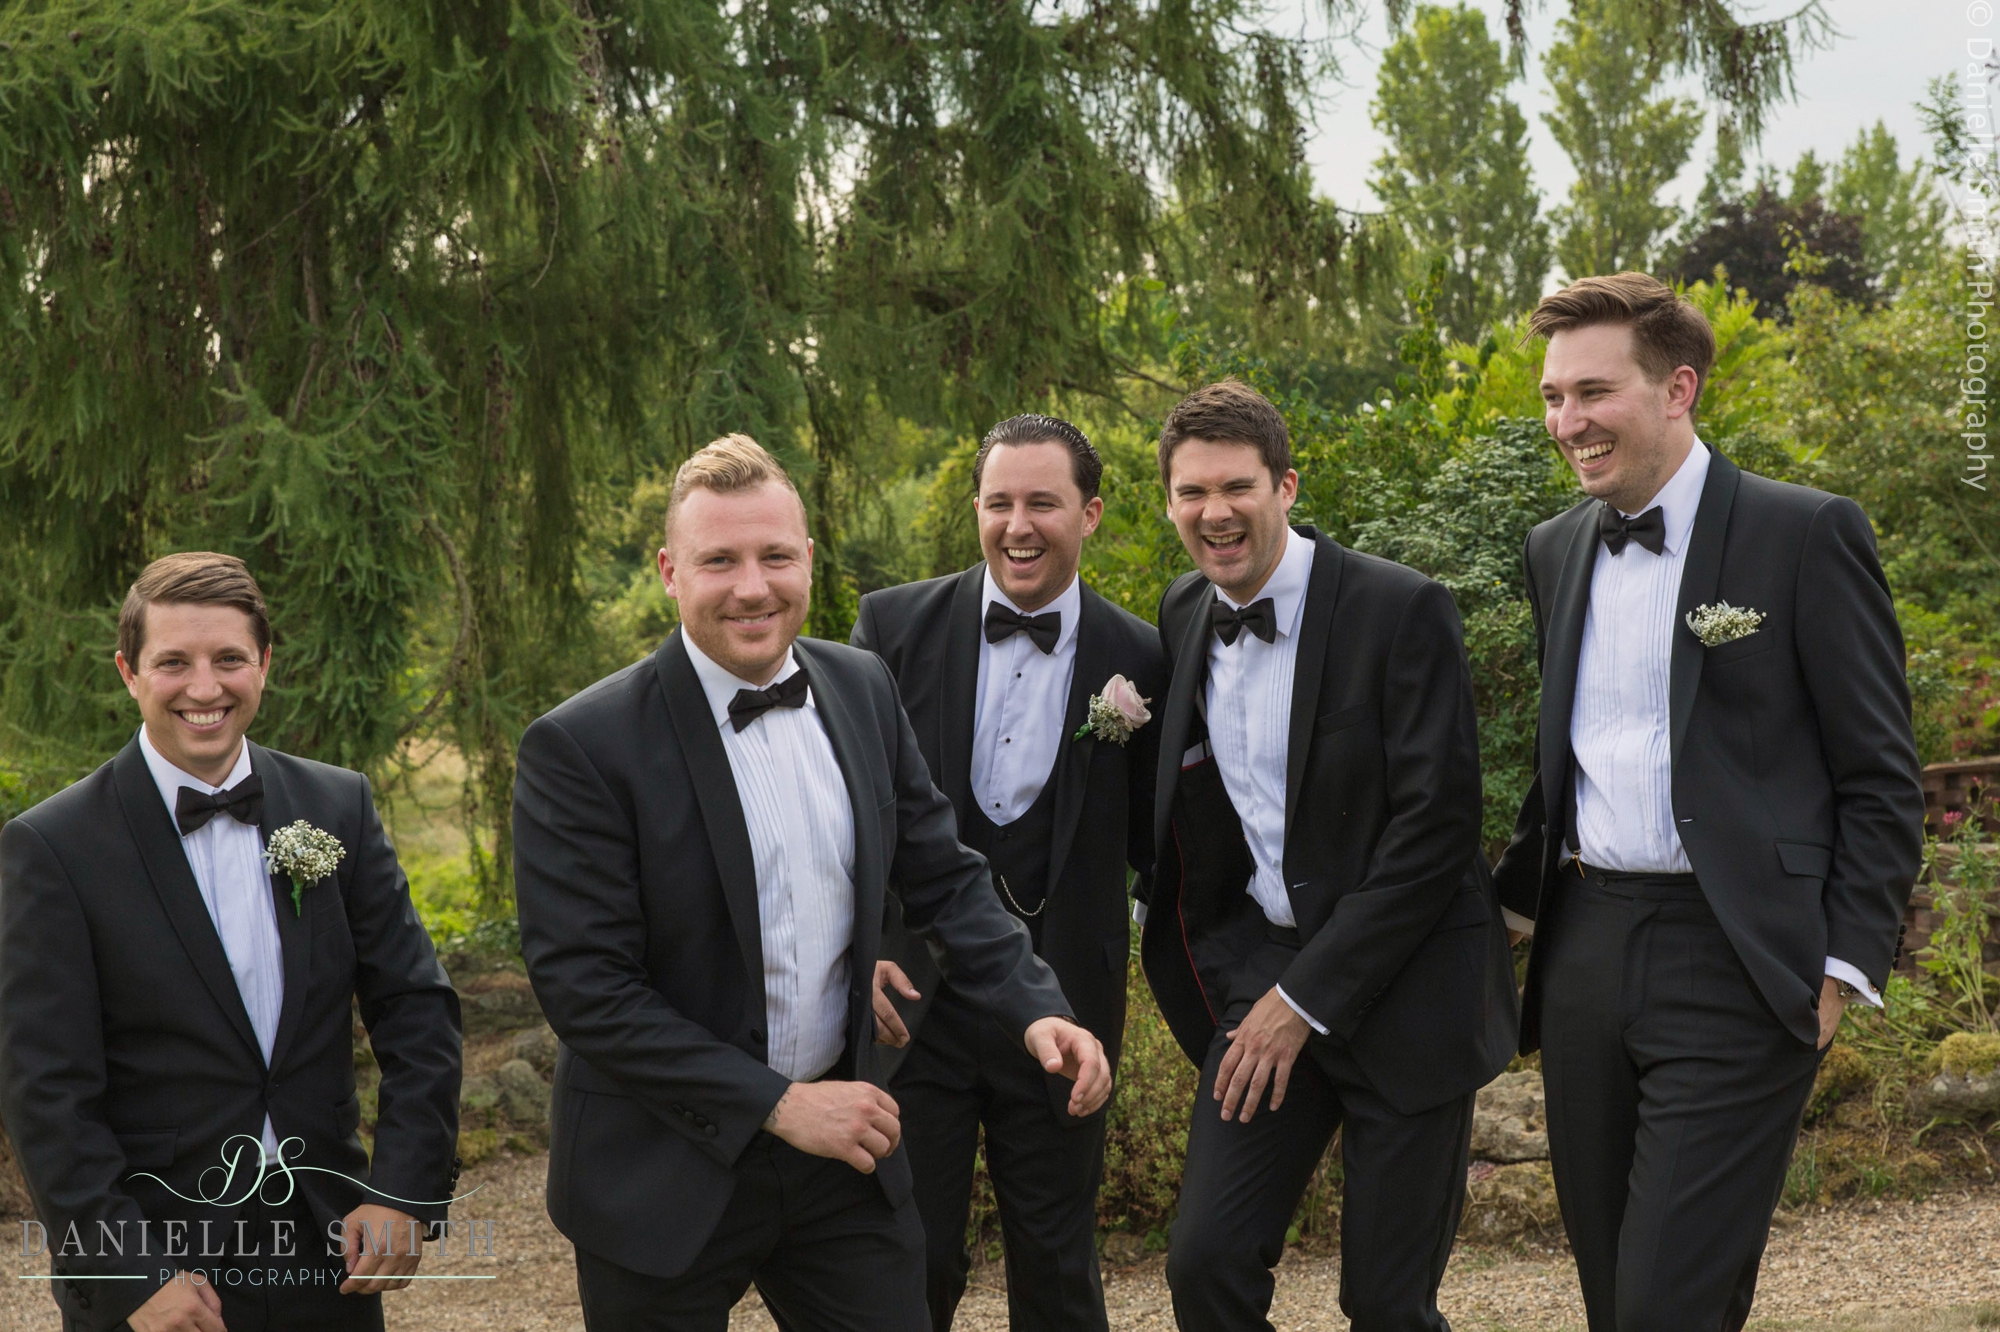 groom and groomsmen messing around - summer garden wedding